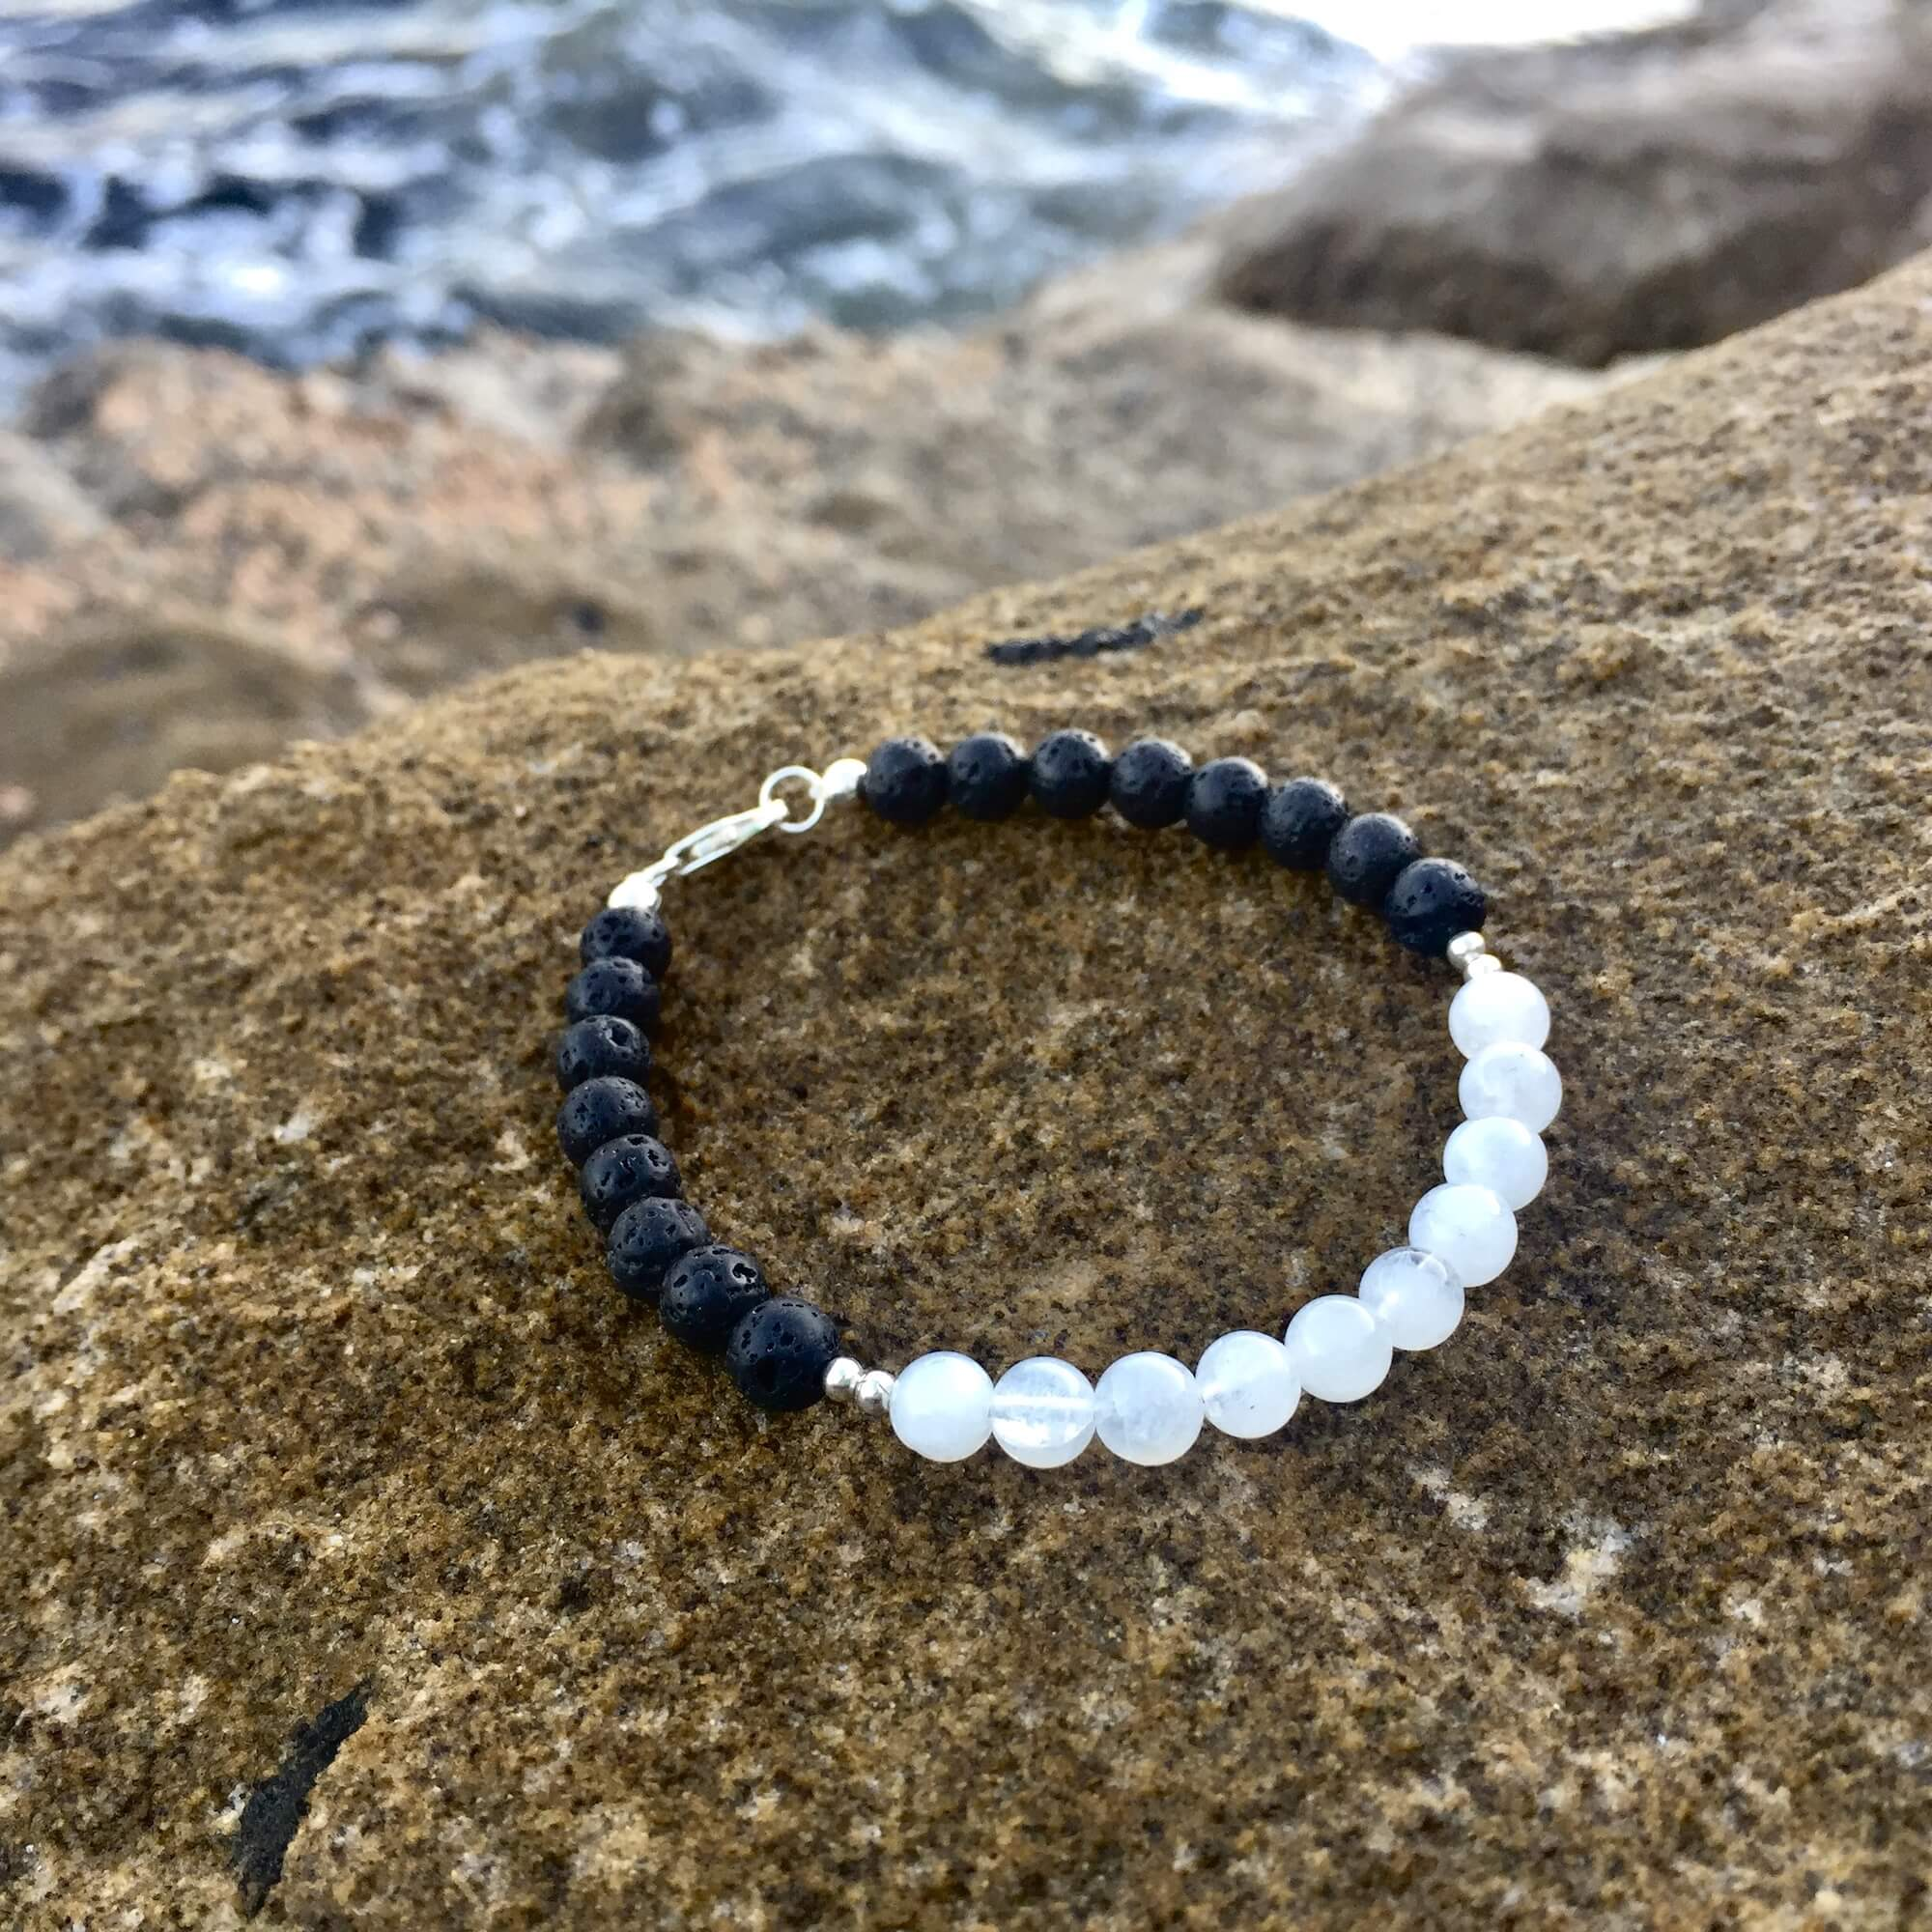 Moonstone Diffuser Bracelet La Luna Love with Lava Beads Hand Beaded by House of Aloha Central Coast NSW Australia